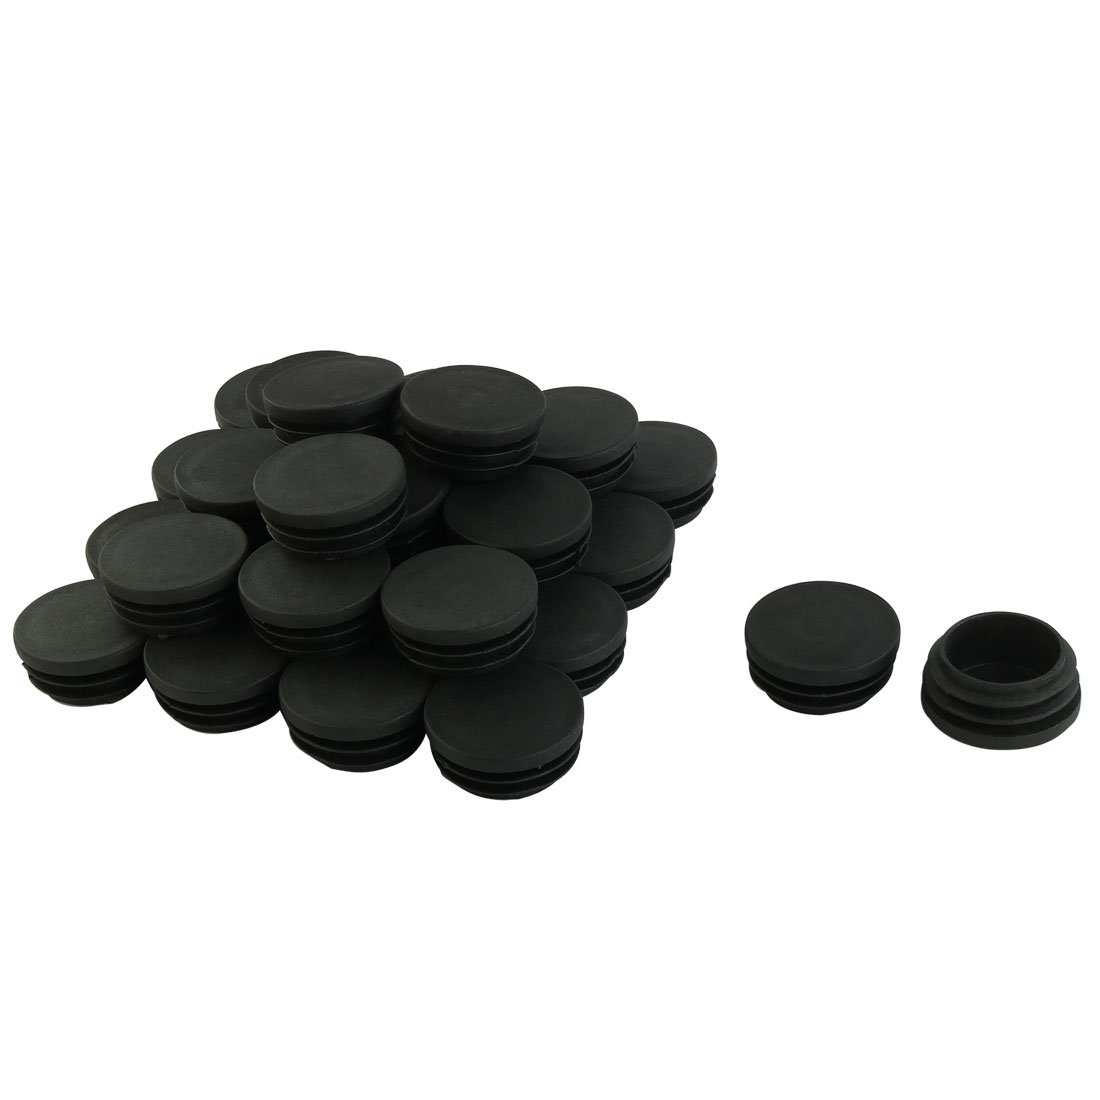 uxcell Plastic Blanking End Caps Inserts Bung Round Pipe Tube Insert 38mm Dia Thread 30pcs Black a14112500ux0062